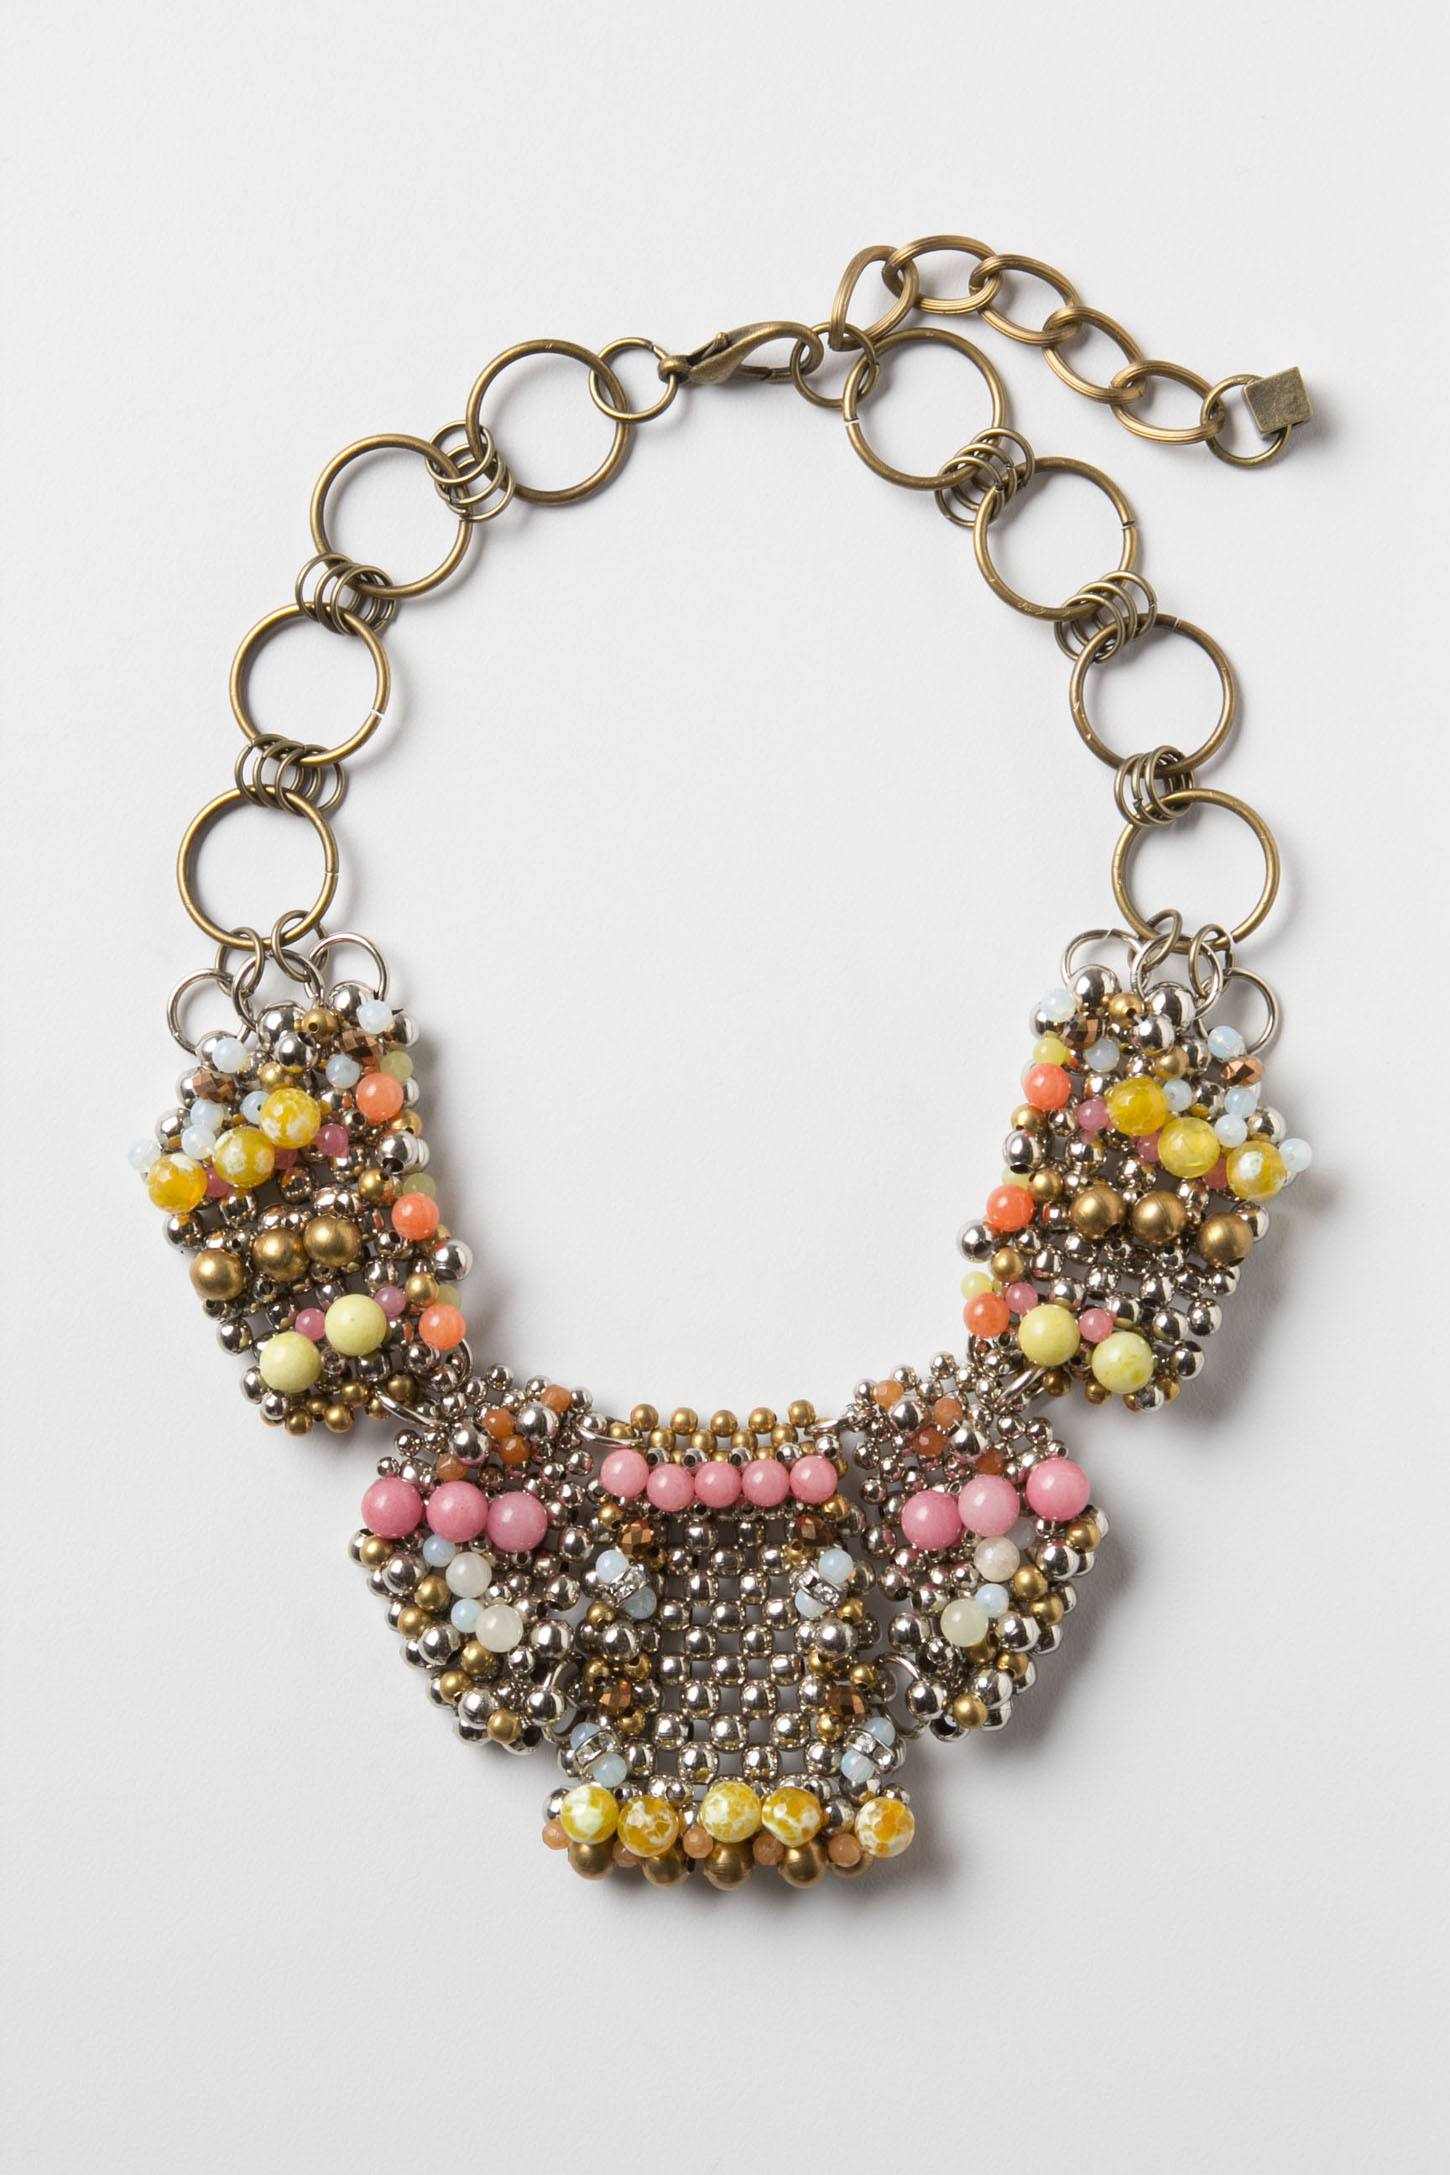 Chasca Necklace